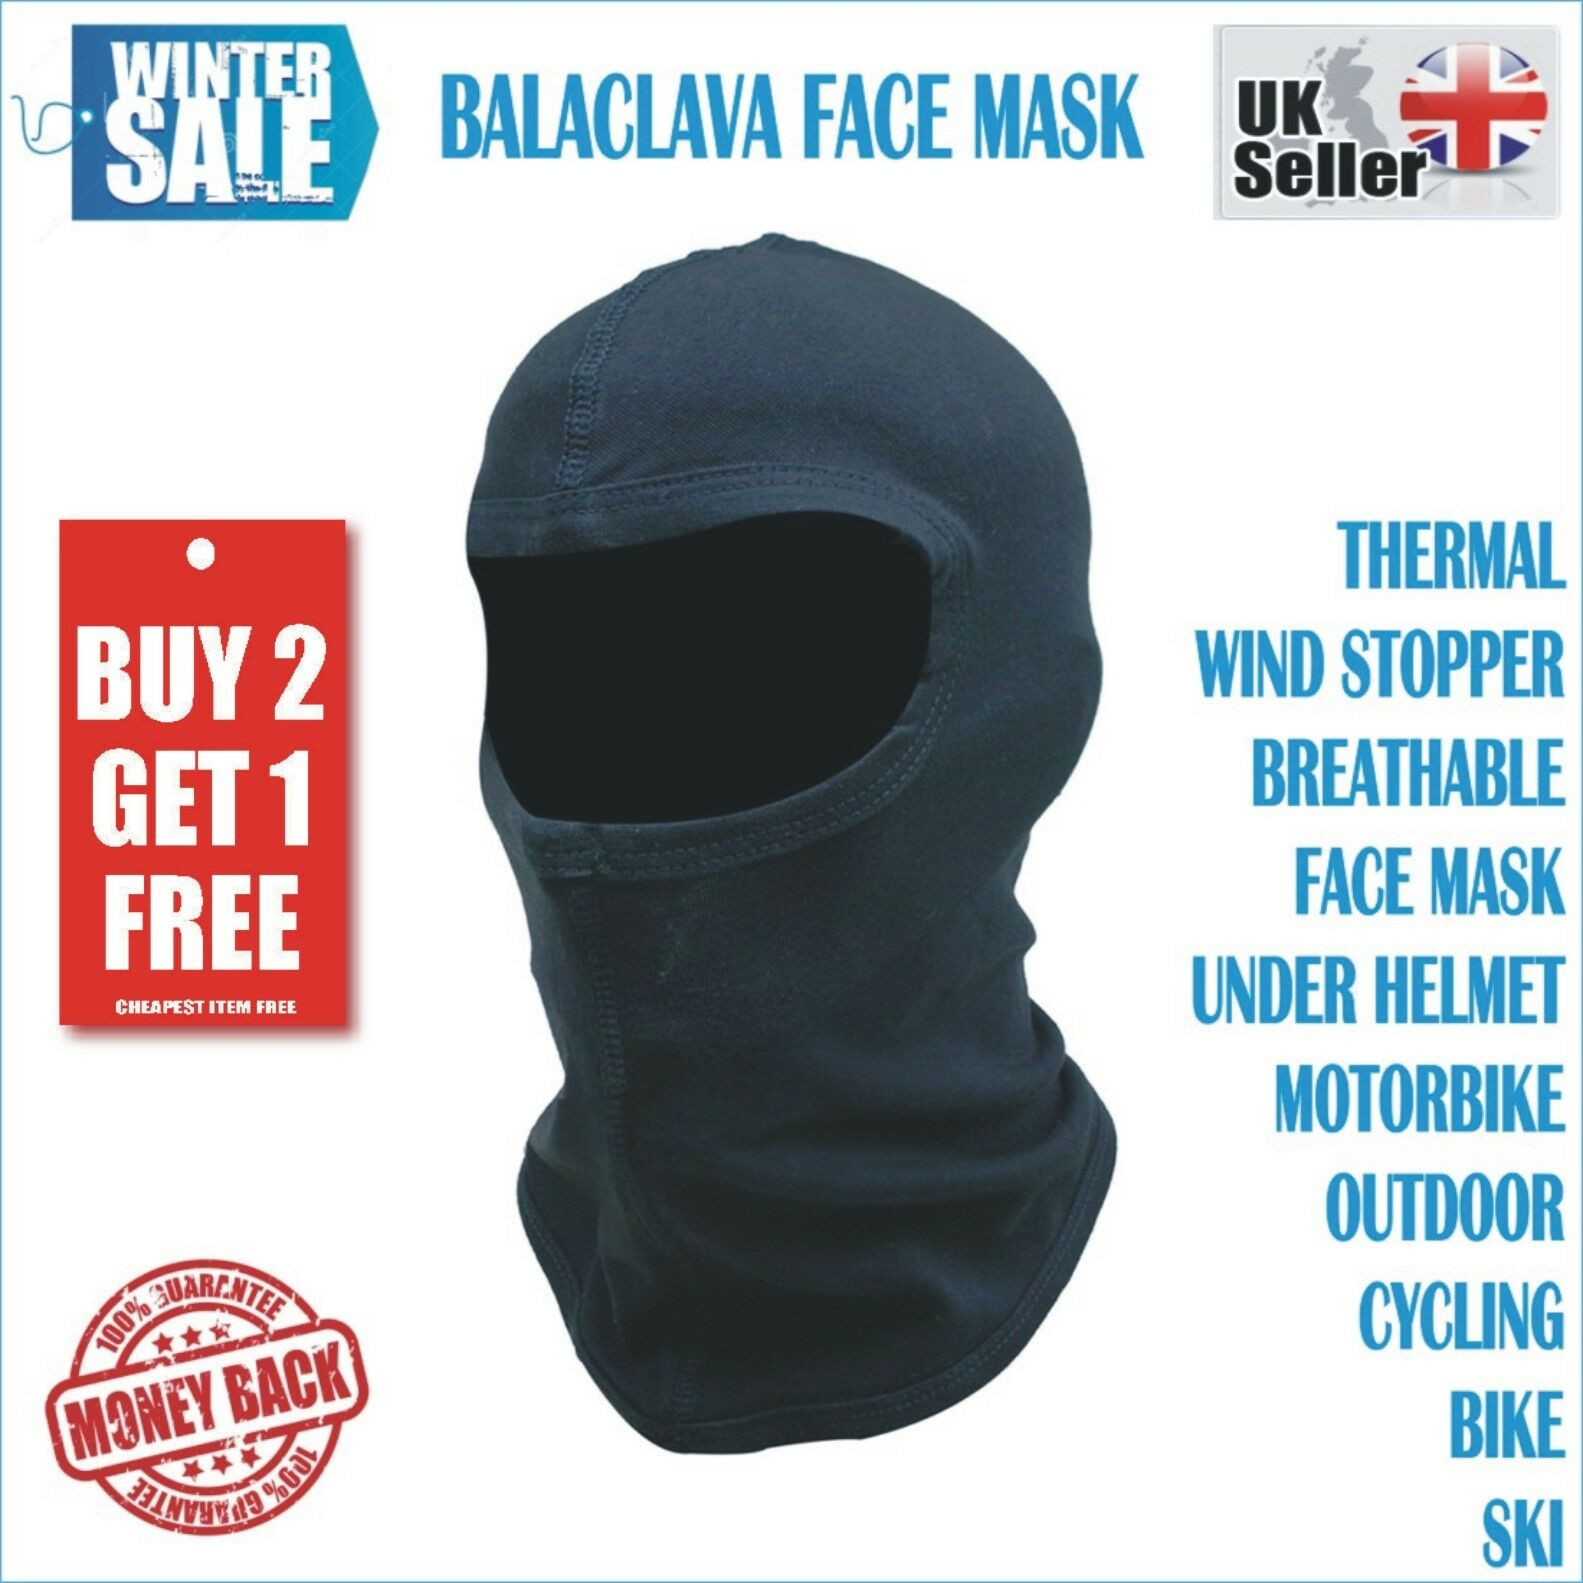 Motorcycle Motorbike Thermal Balaclava Ski Face Mask Under Helmet Neck  Warmer UK 9bbb2ccd3